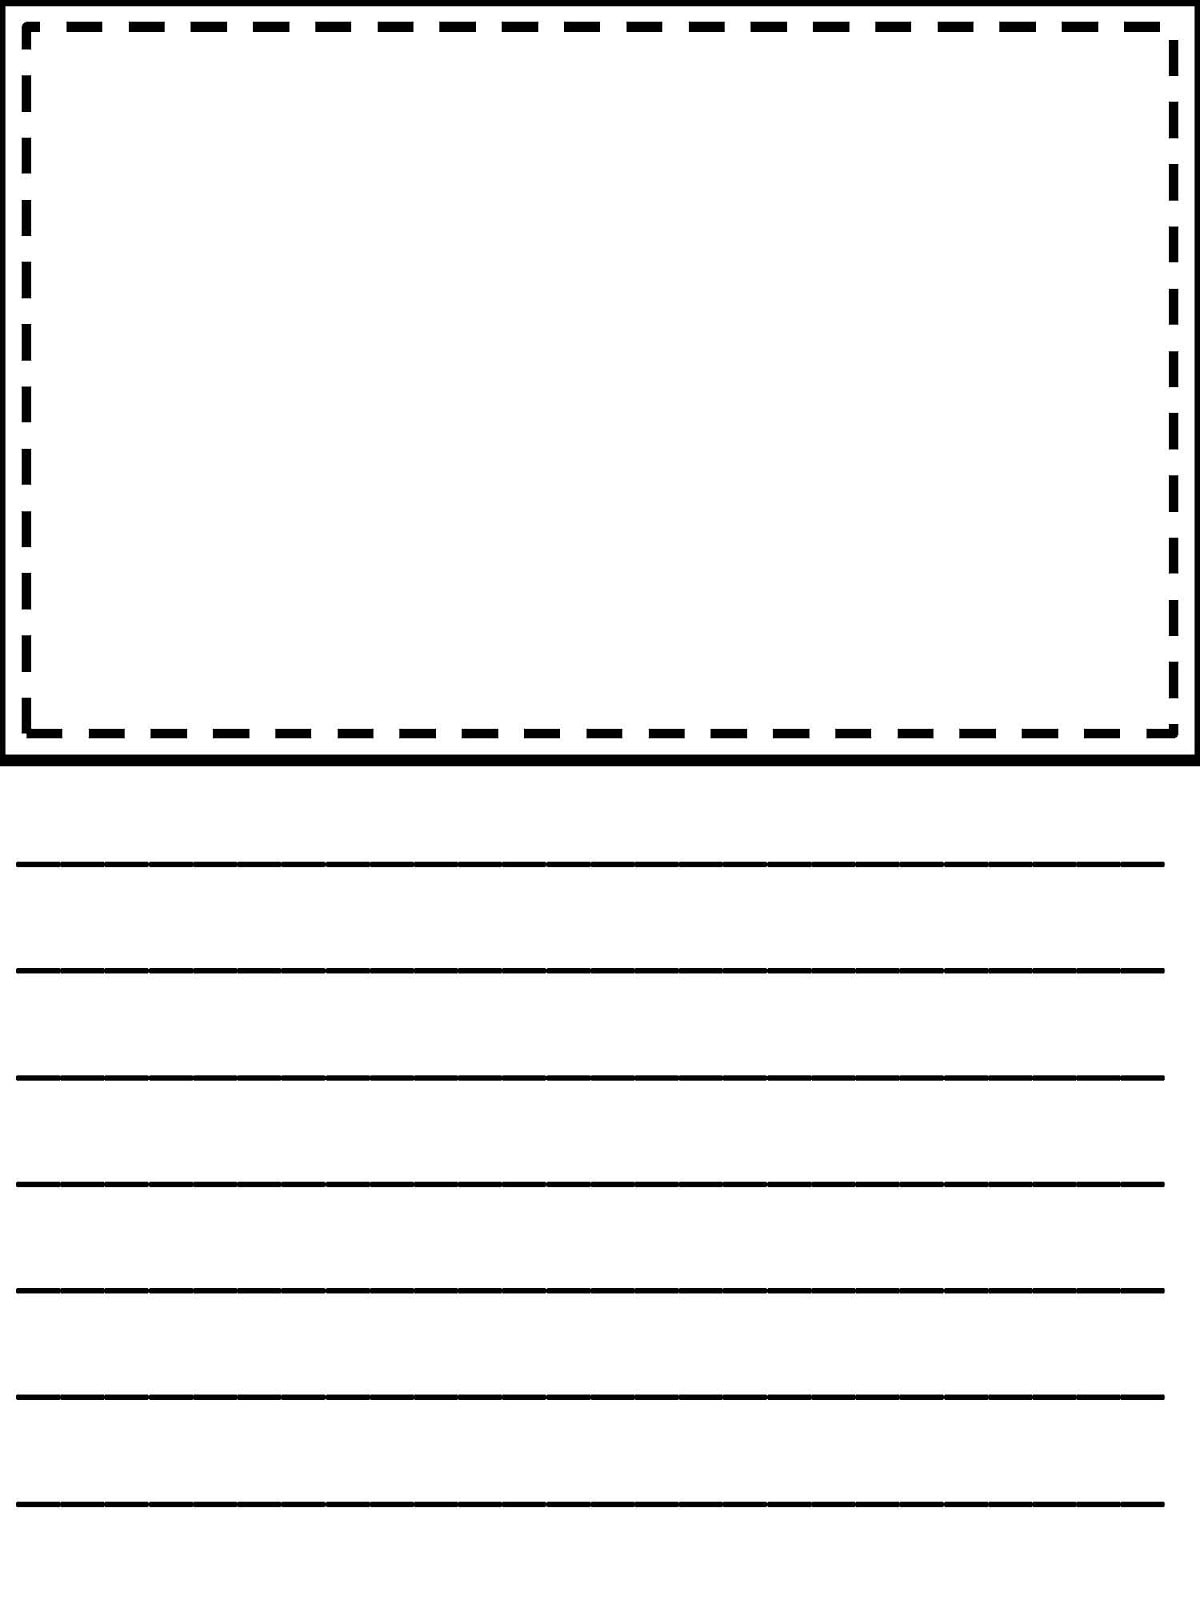 download blank Lined Paper with sizes and inch pdf templates